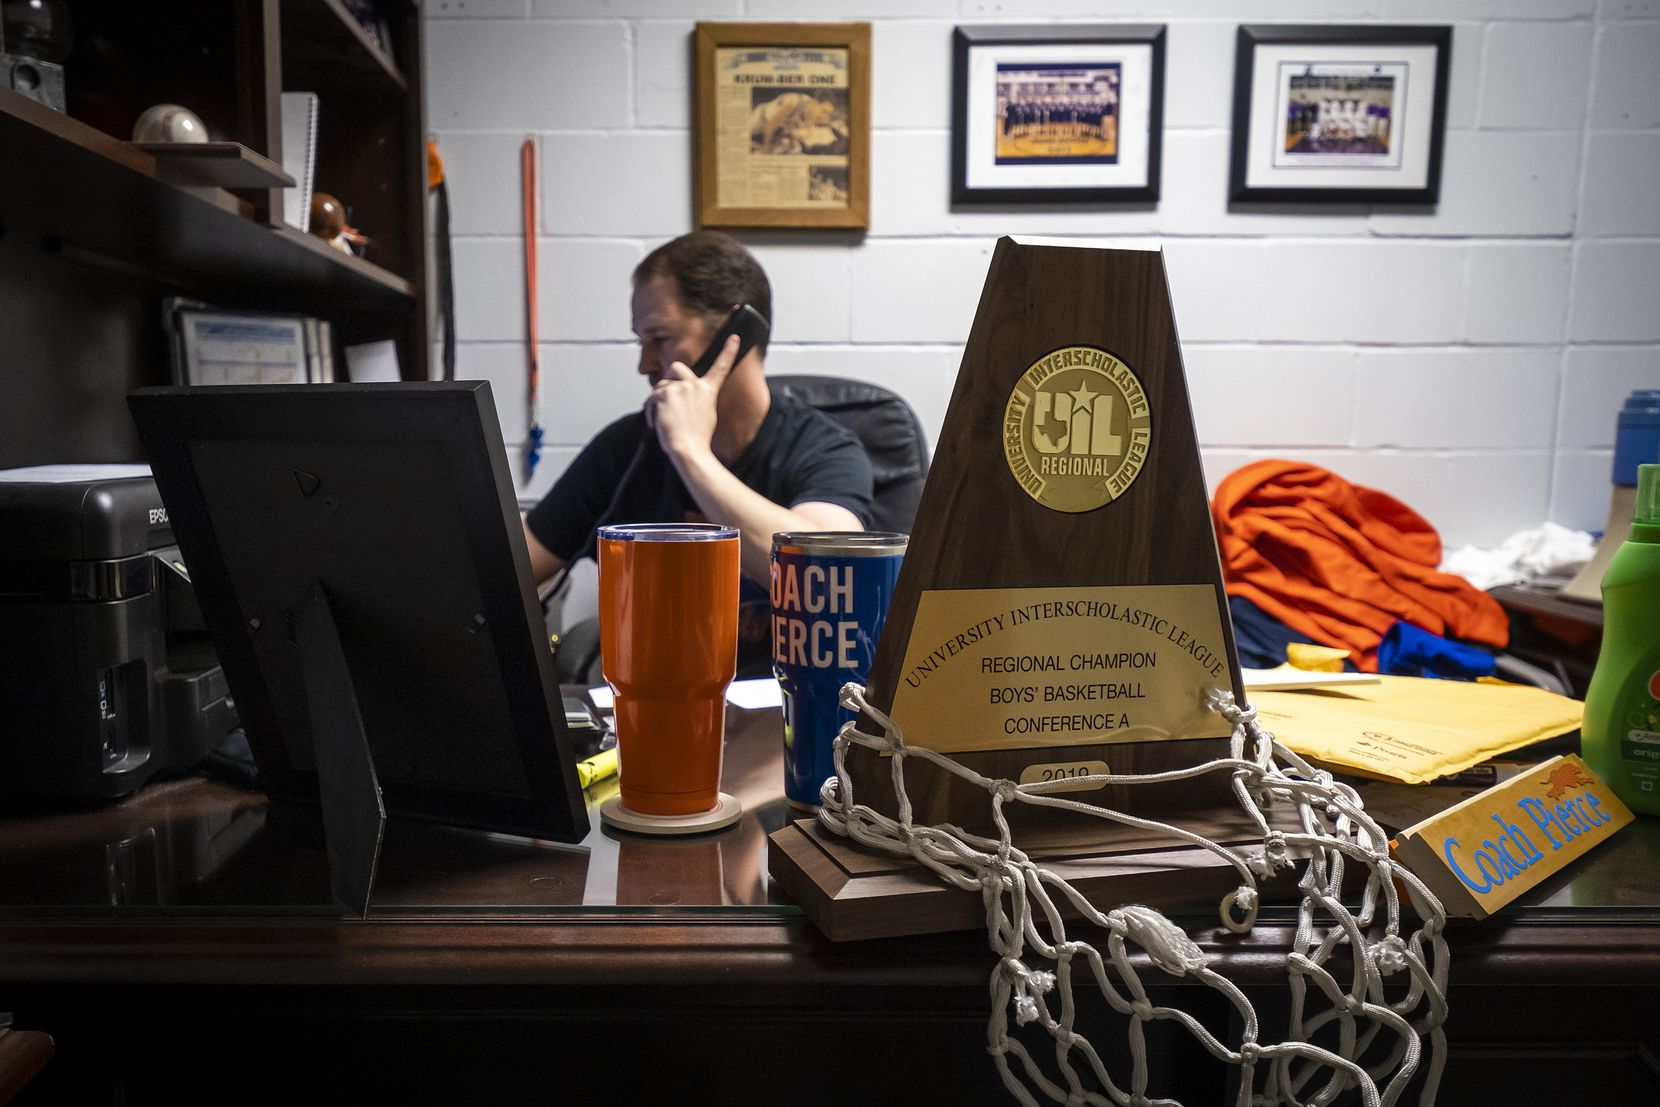 The team's 2019 UIL Regional Championship trophy sit on his desk as Slidell High School head coach Casey Pierce's makes a phone call in his office after practice at the school on Tuesday, March 5, 2019, in Slidell, Texas. Slidell High School, northwest of Denton, is trying to win its first state boys basketball title since 1943. (Smiley N. Pool/The Dallas Morning News)